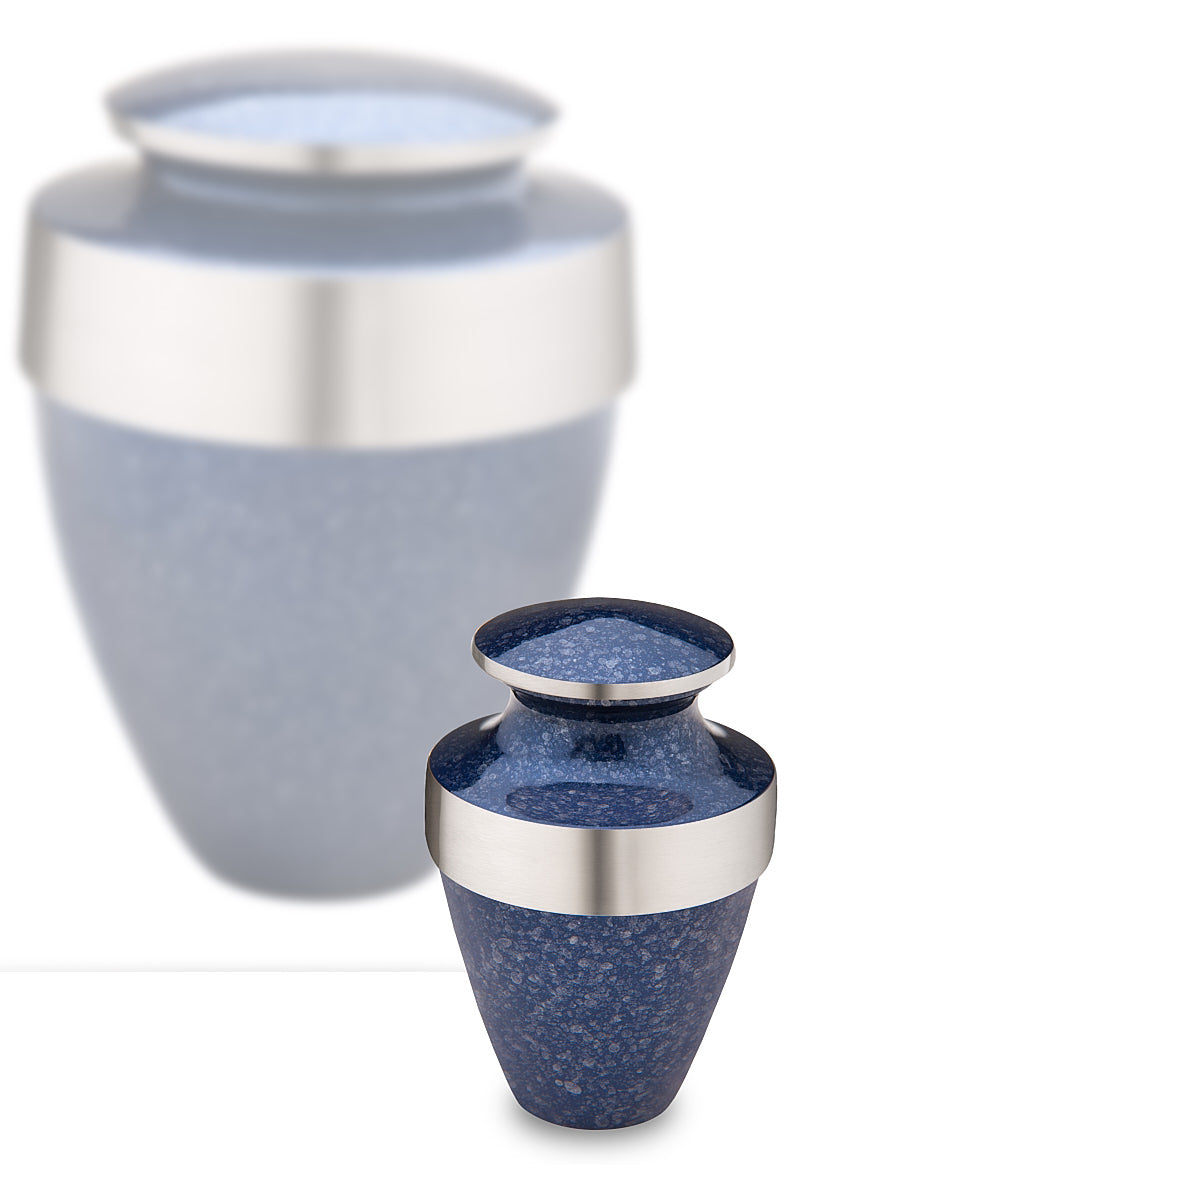 Keepsake Eternity Speckled Indigo Cremation Urn